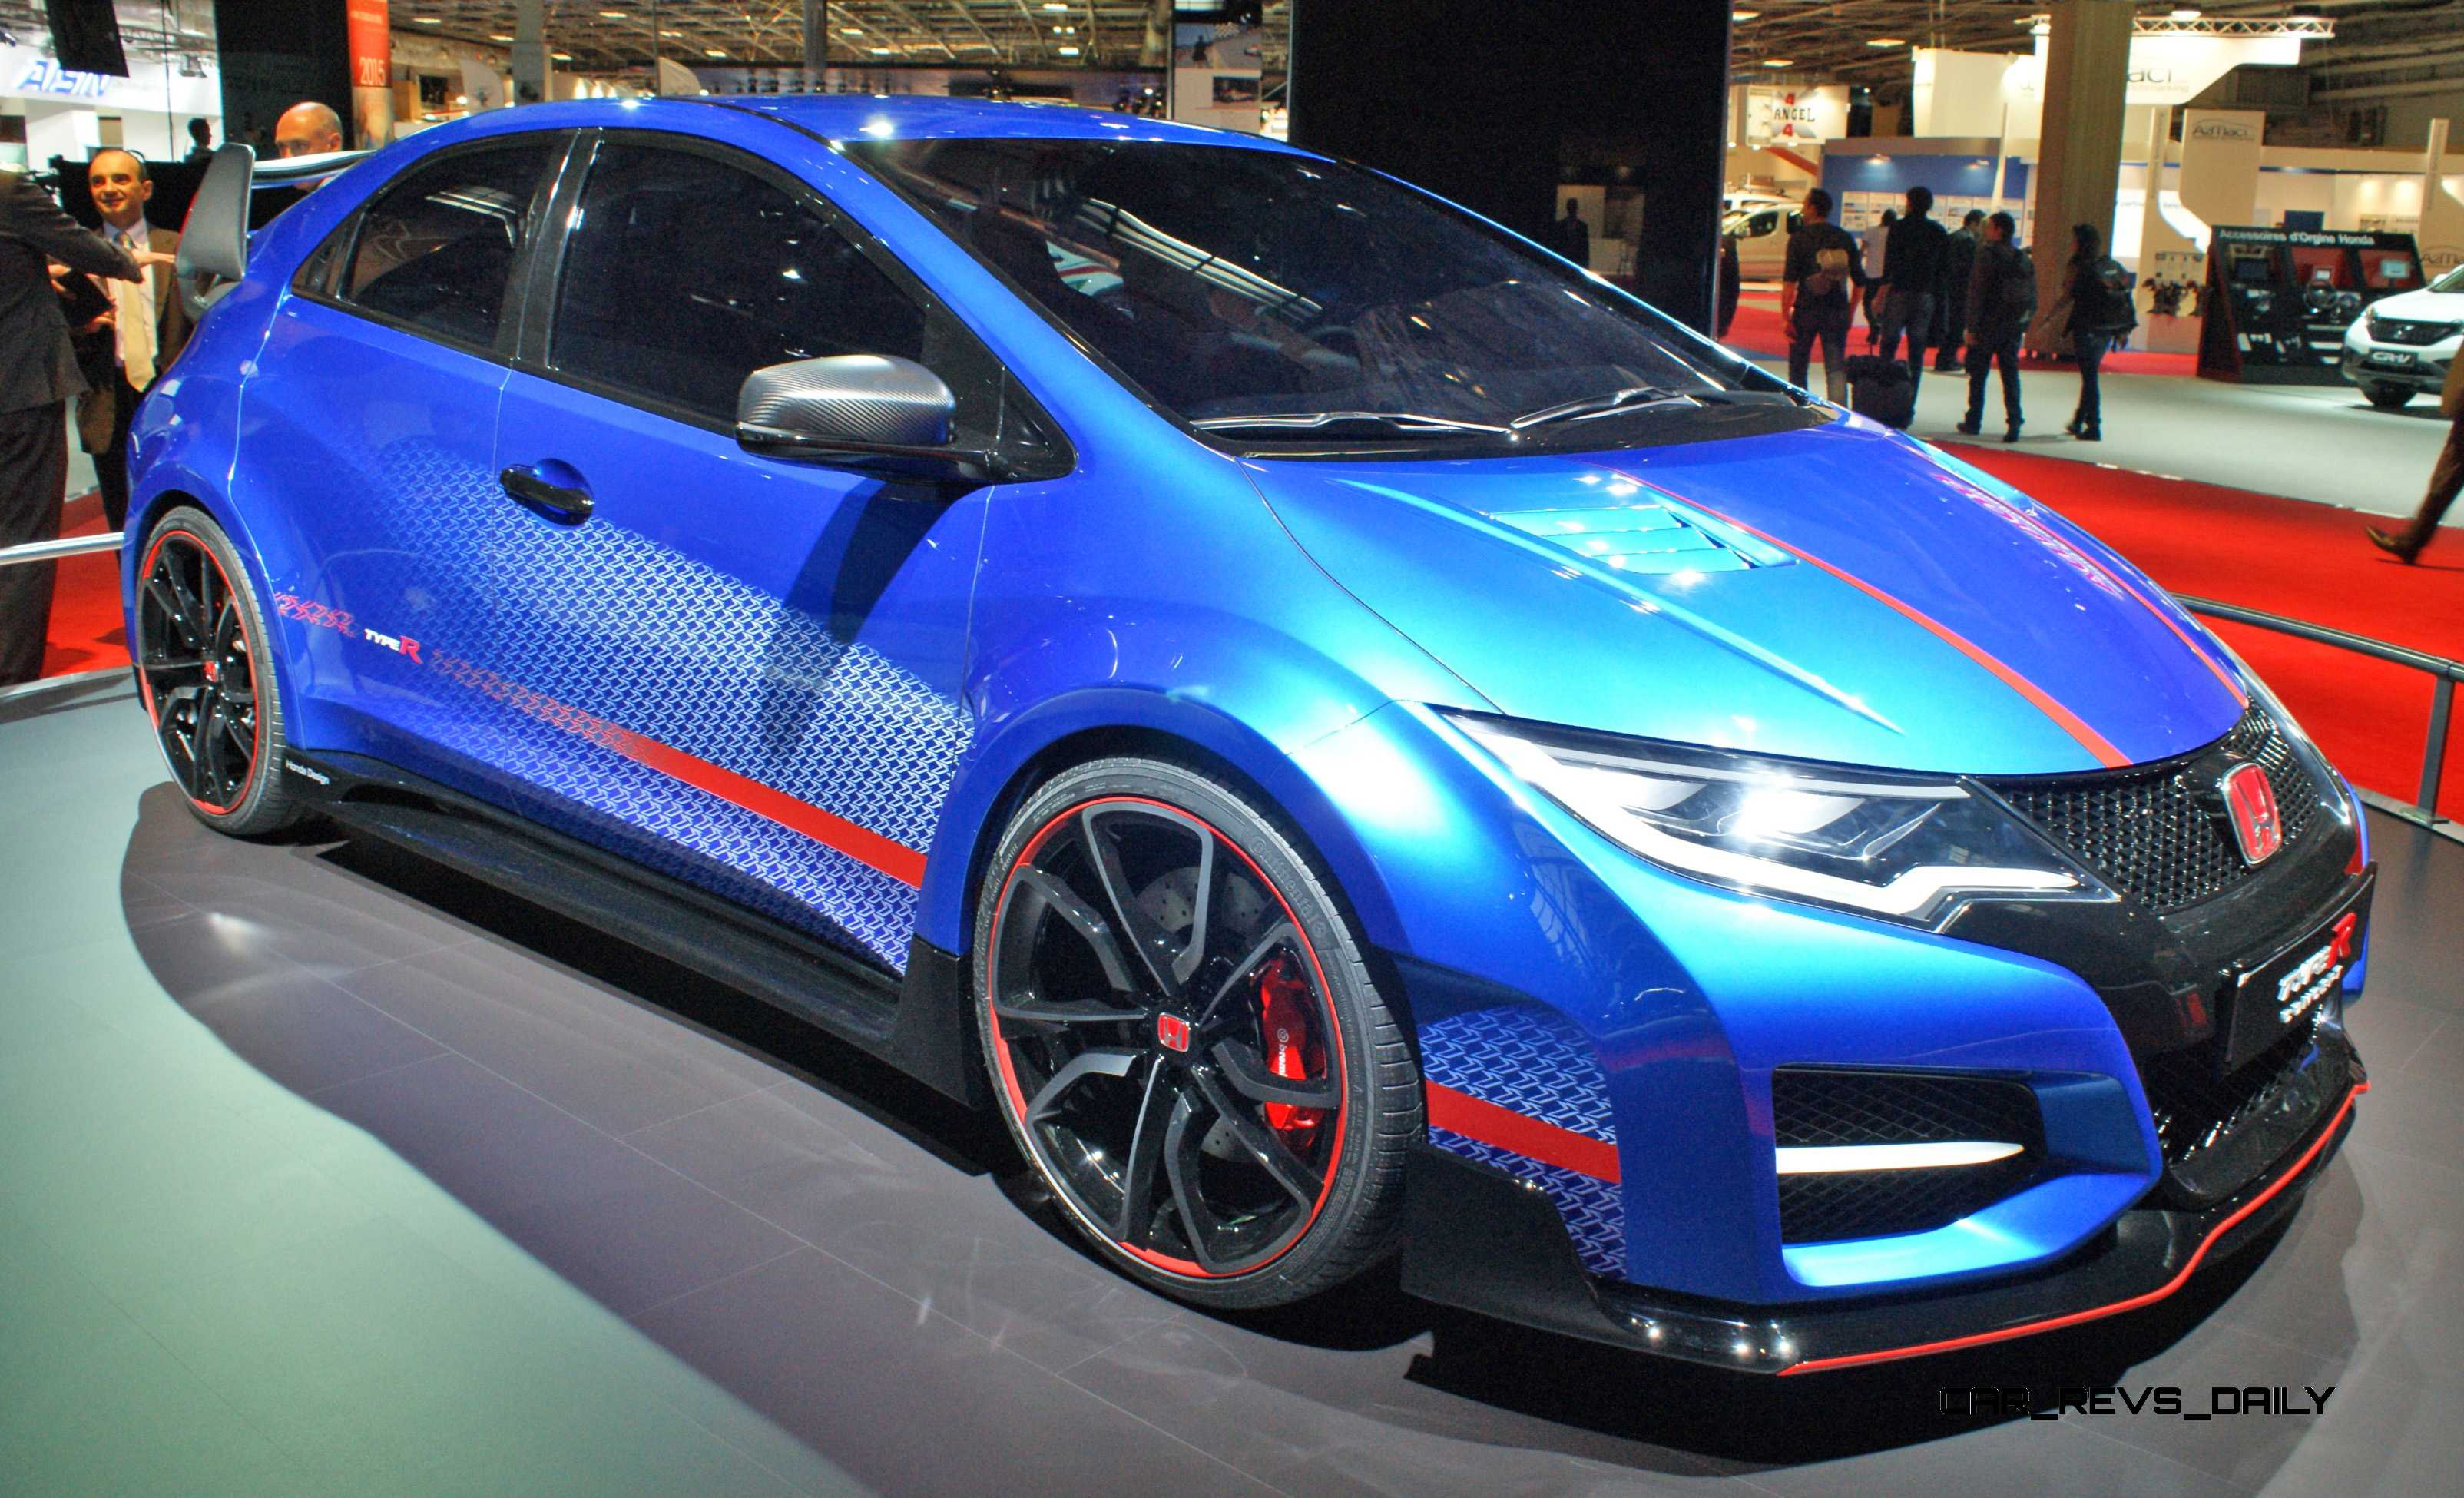 2015 honda civic type r concept two makes paris debut. Black Bedroom Furniture Sets. Home Design Ideas